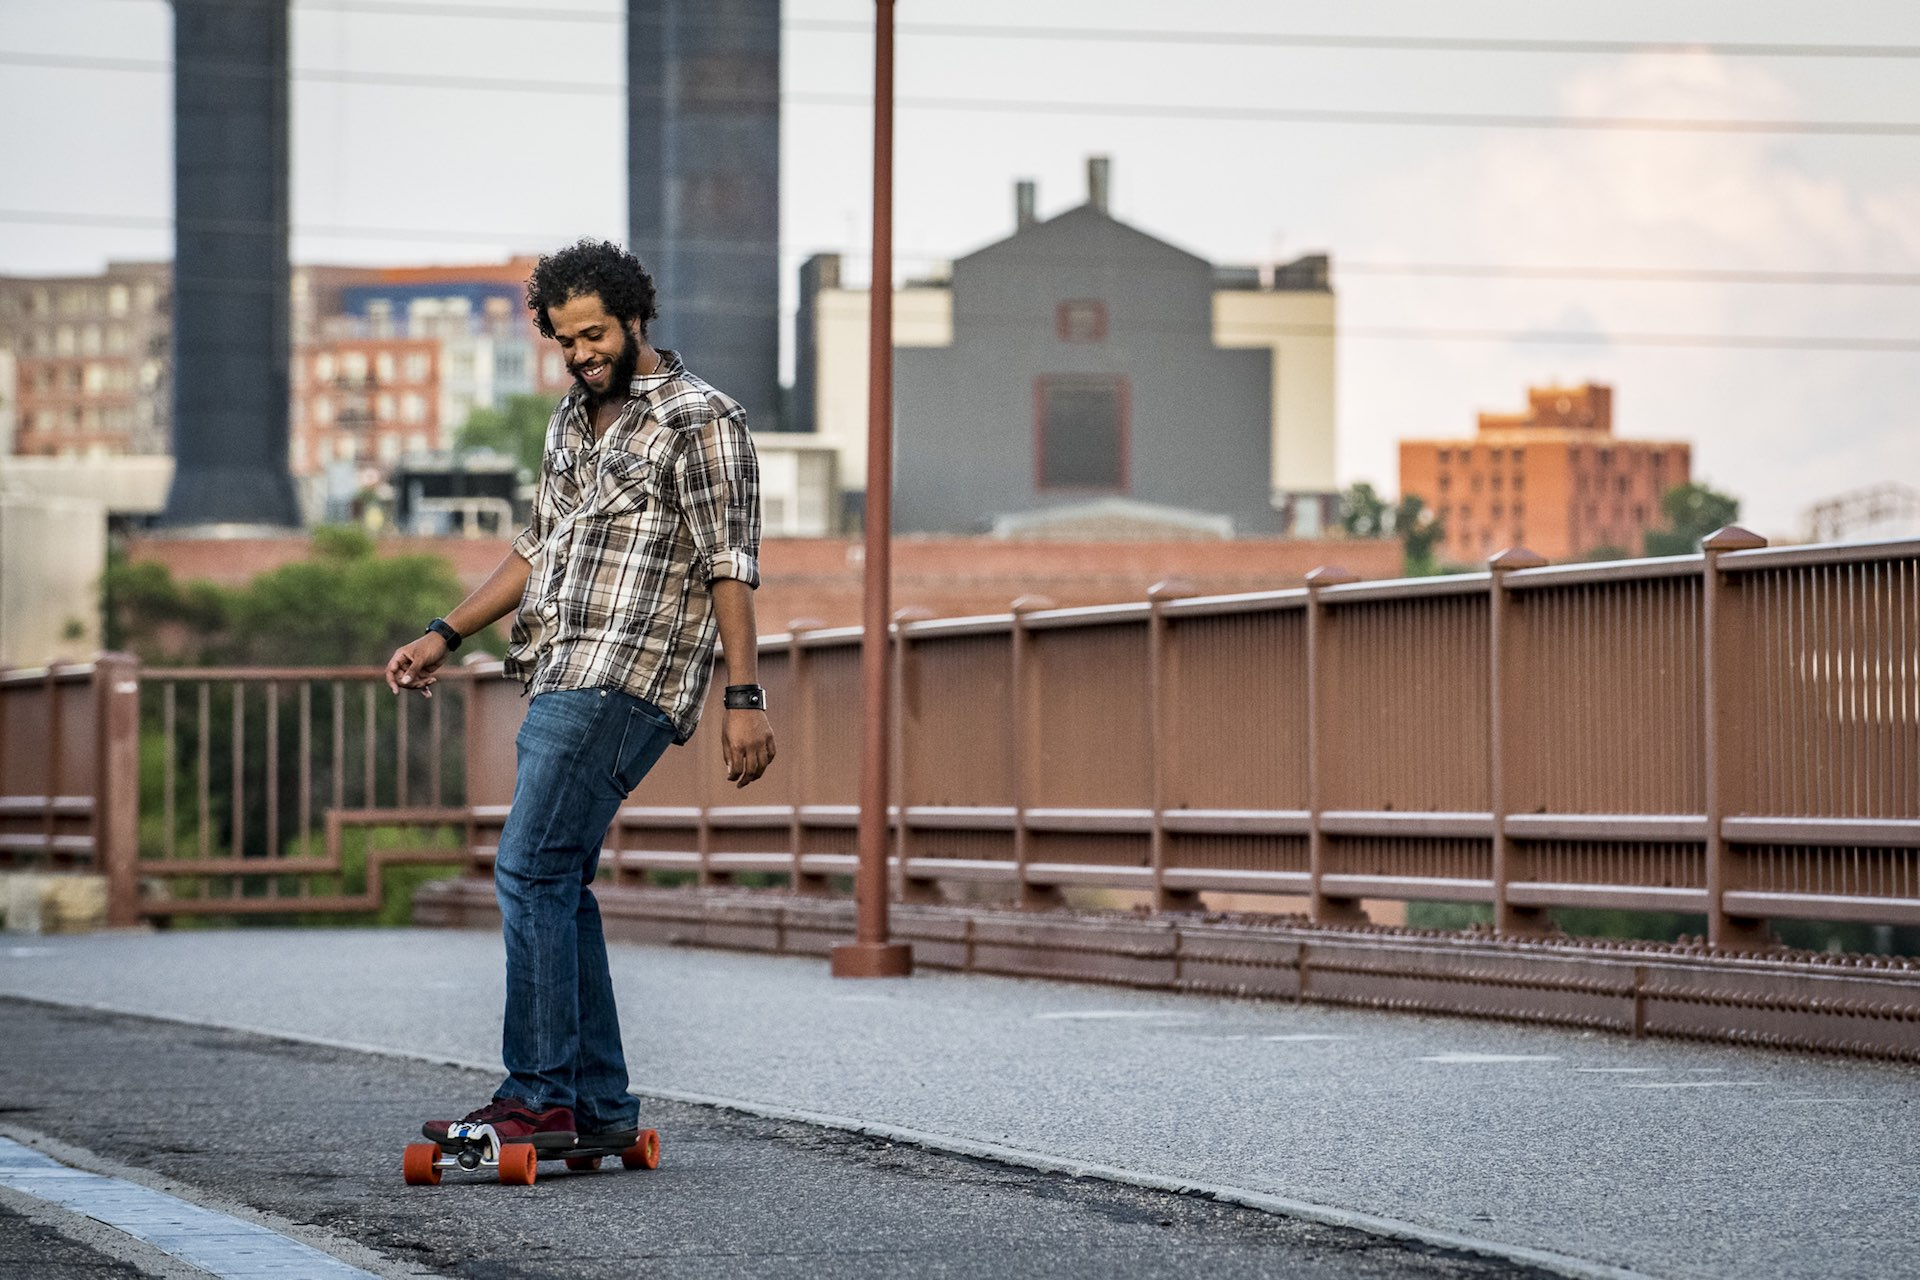 Miles Kipper Minneapolis longboarding longboarder I-35 bridge hero I